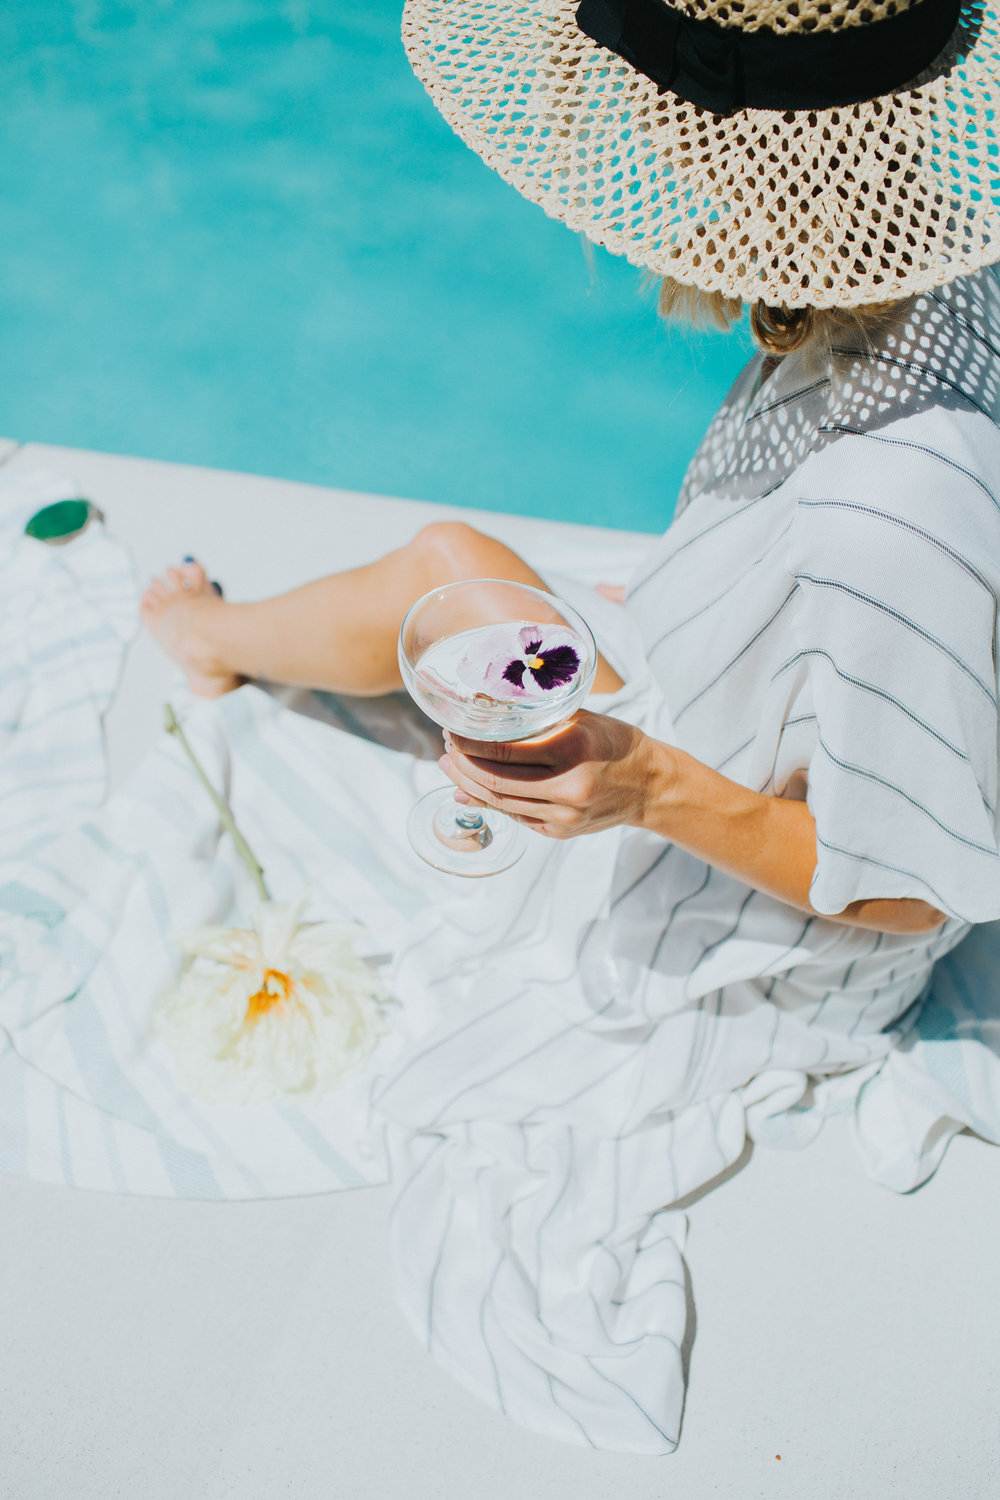 Weekend cocktails by the pool | A Fabulous Fete